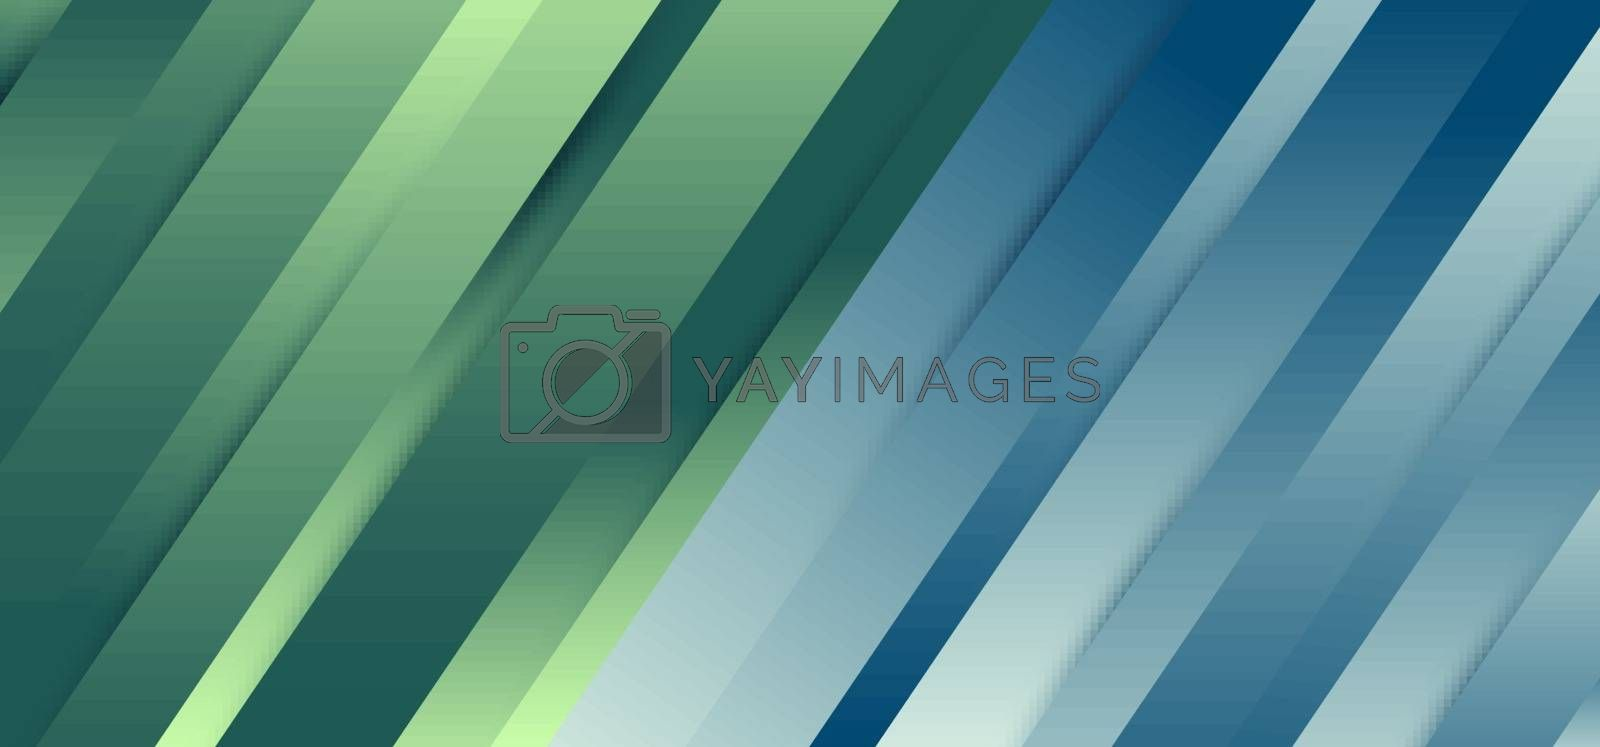 Abstract premium diagonal line blue and green gradient dynamic shadow background and texture. Vector illustration